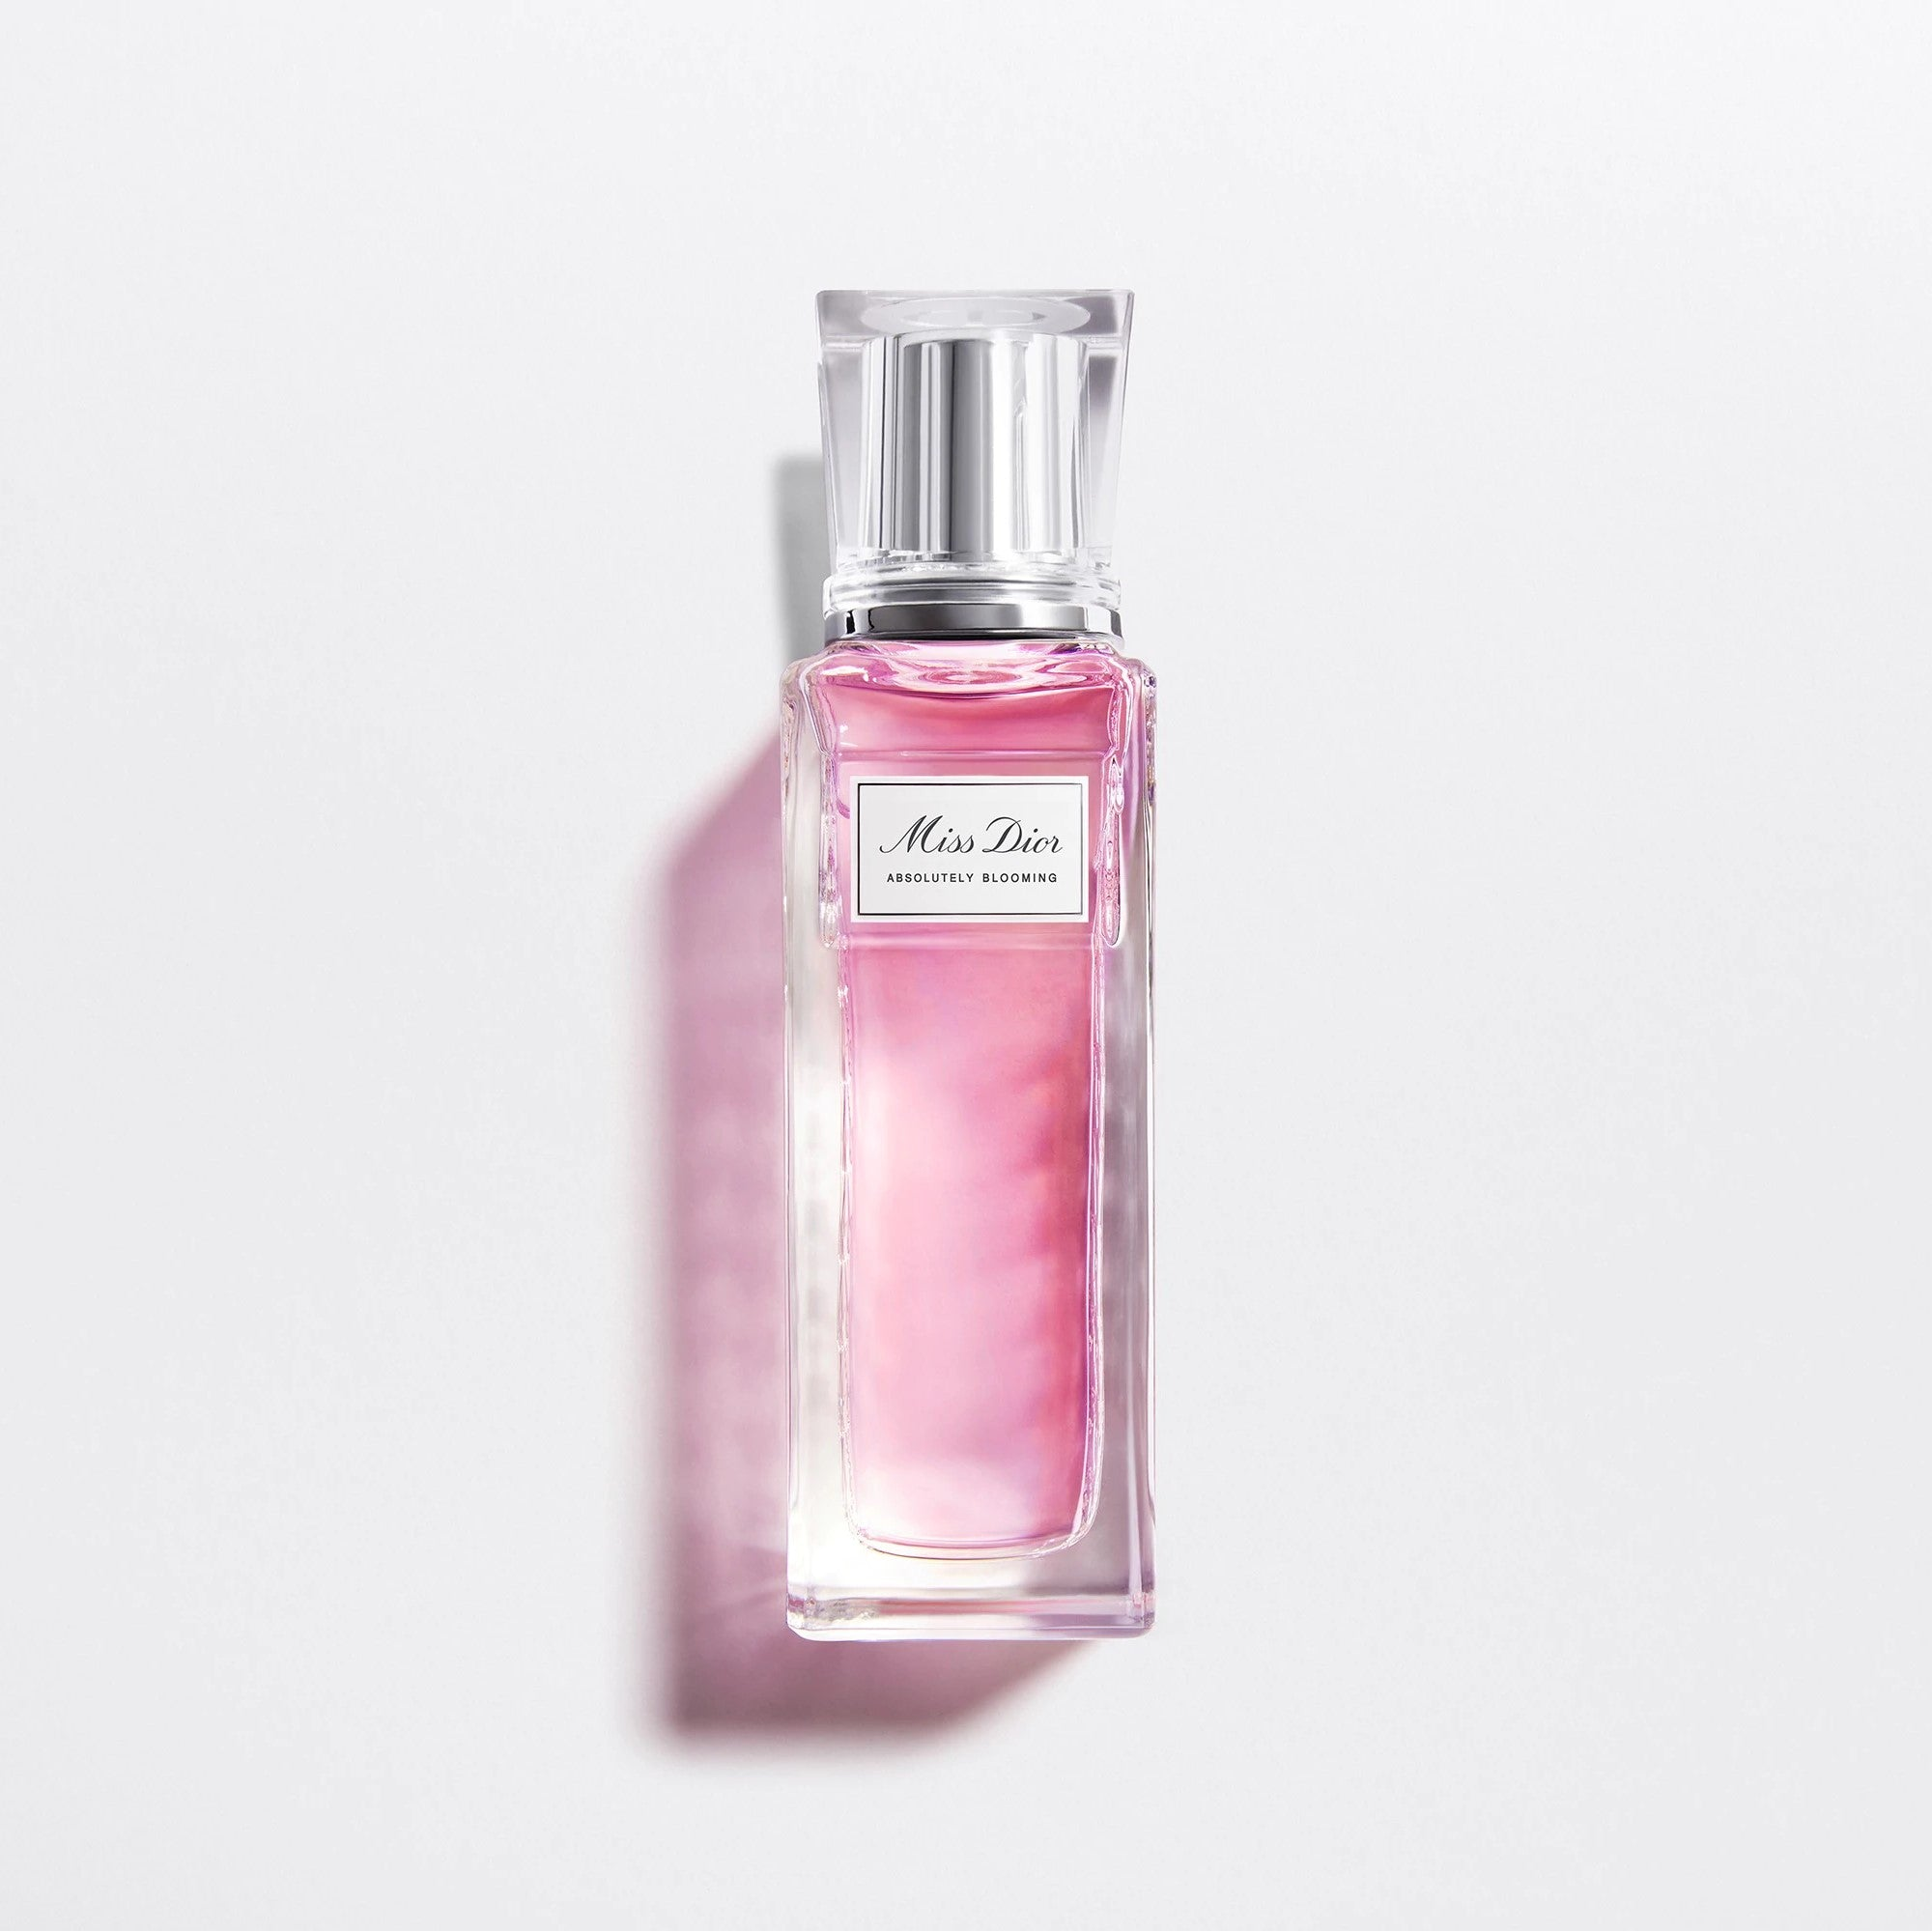 MISS DIOR ABSOLUTELY BLOOMING | Roll-on Fragrance